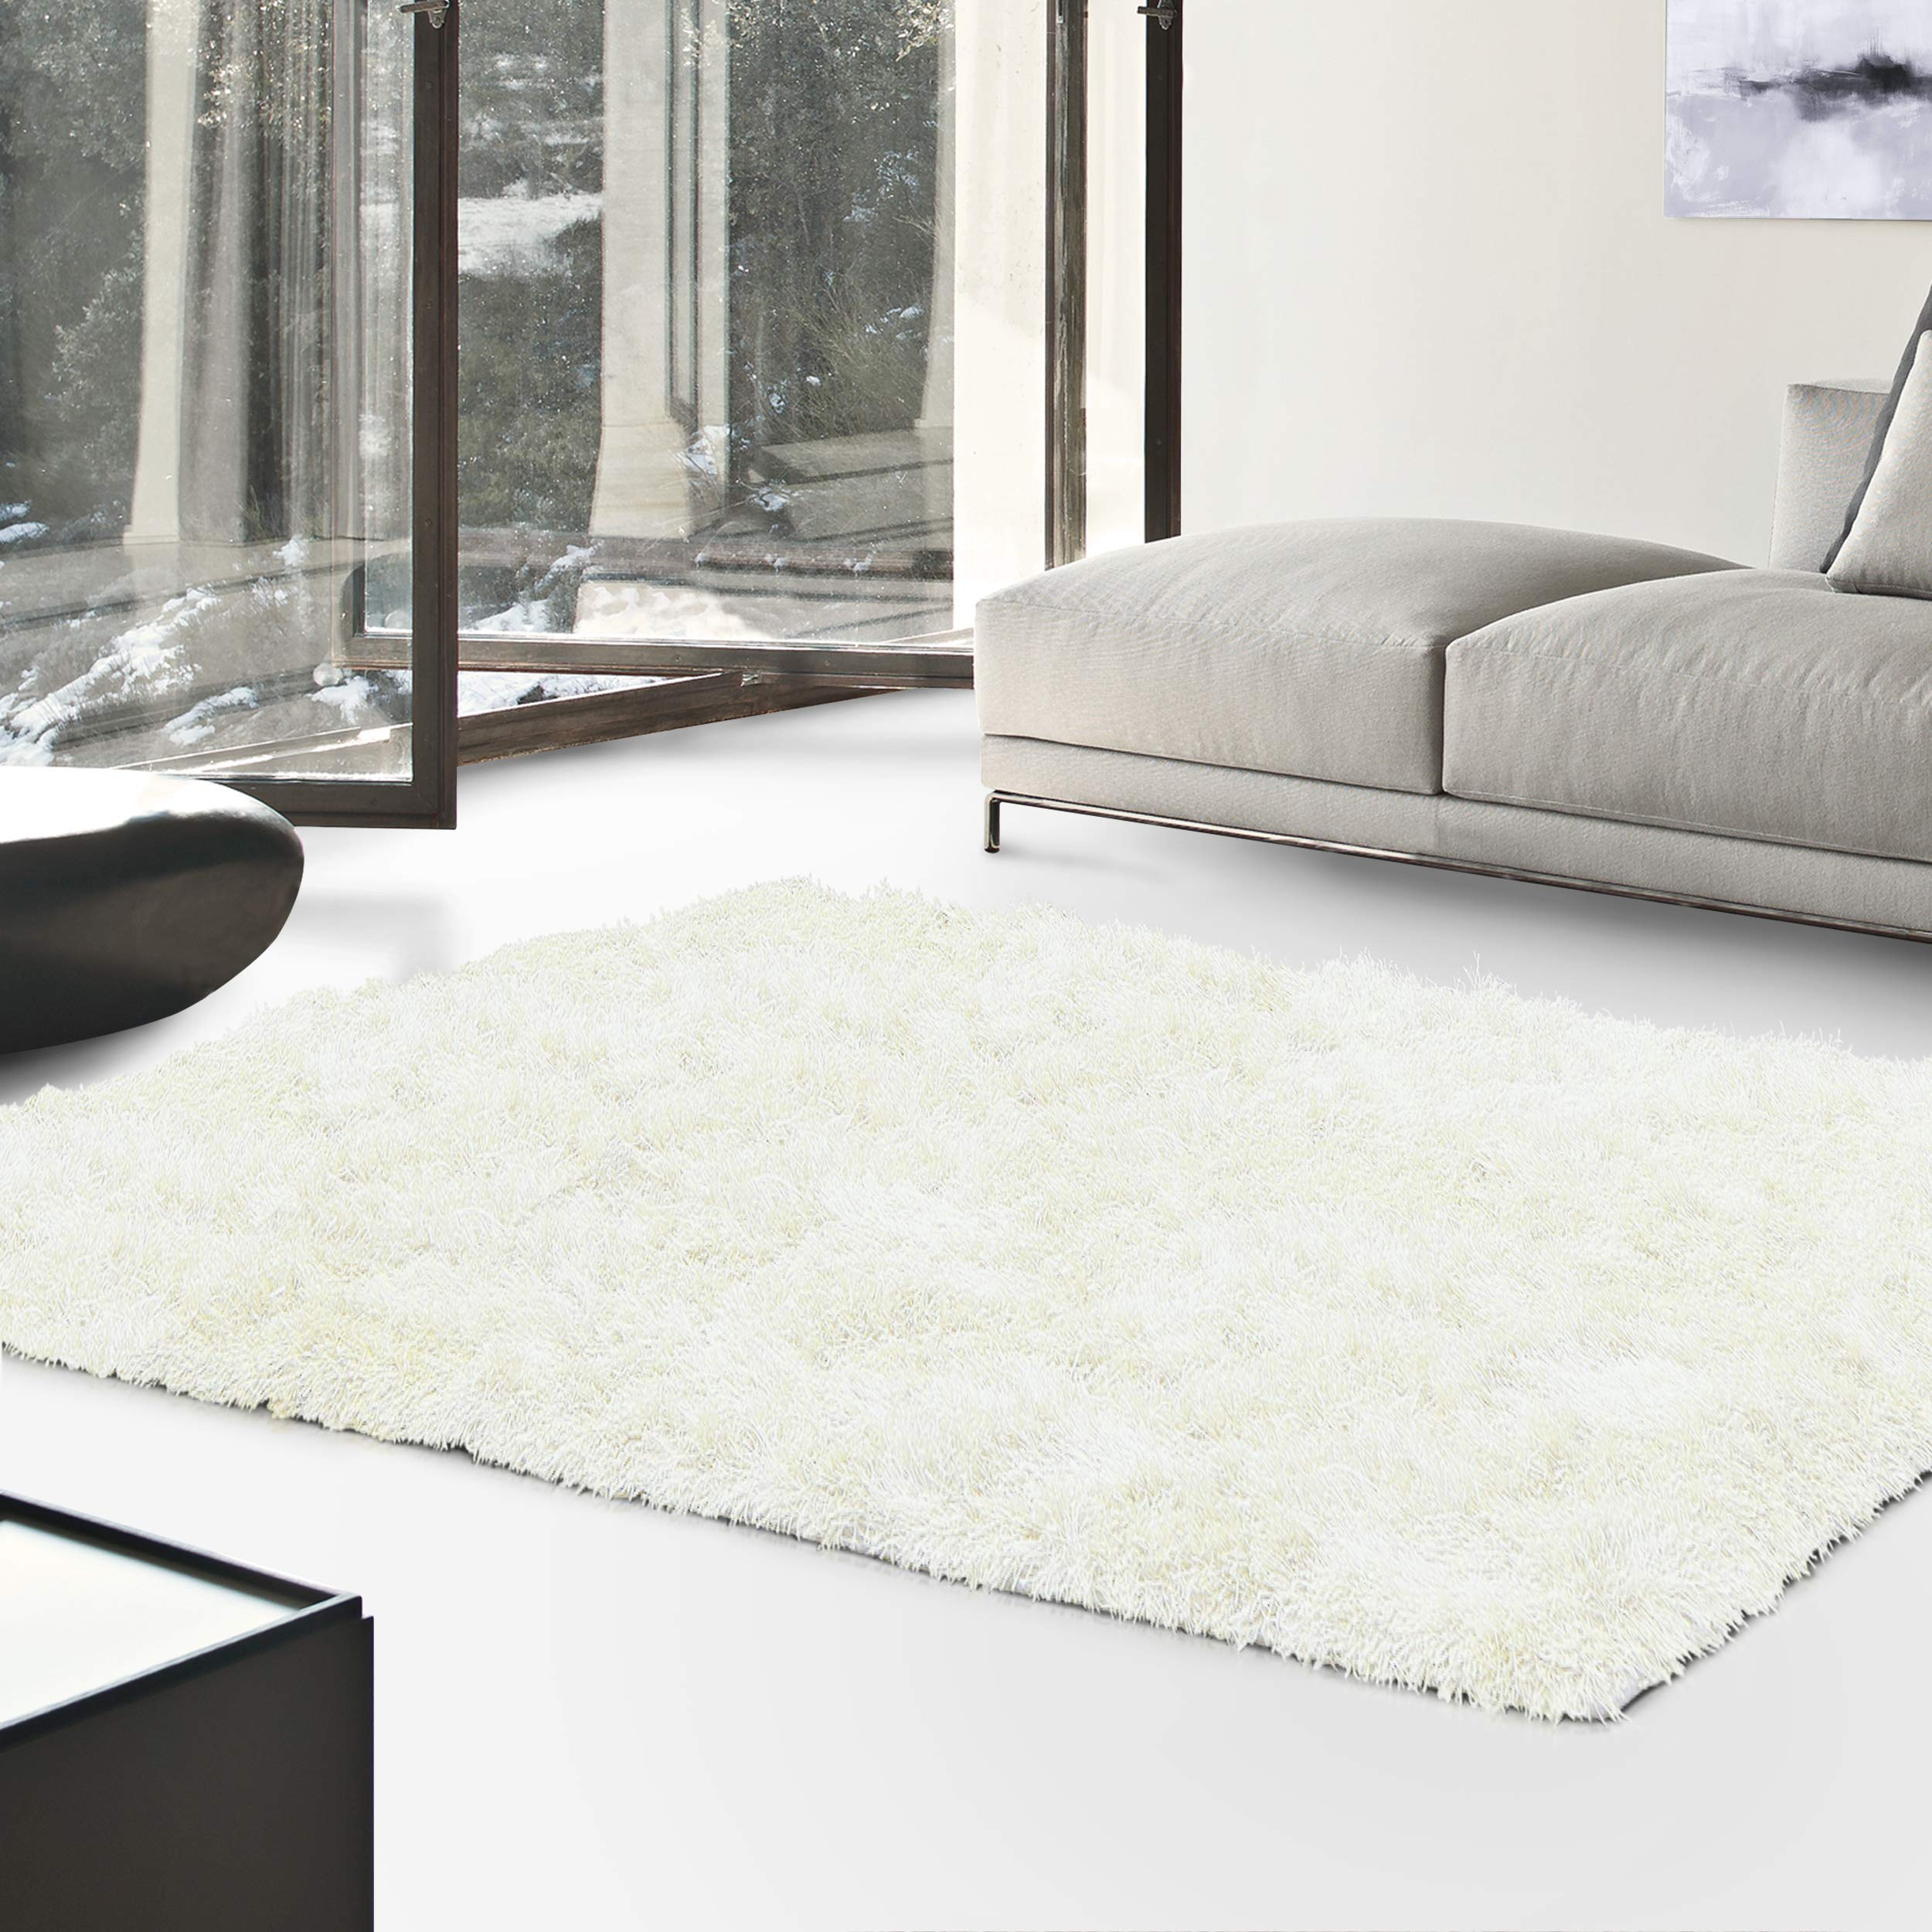 Superior Hand Tufted Thick, Plush, Cozy Quality Shag Textured Area Rugs, Ivory - 3' x 5'